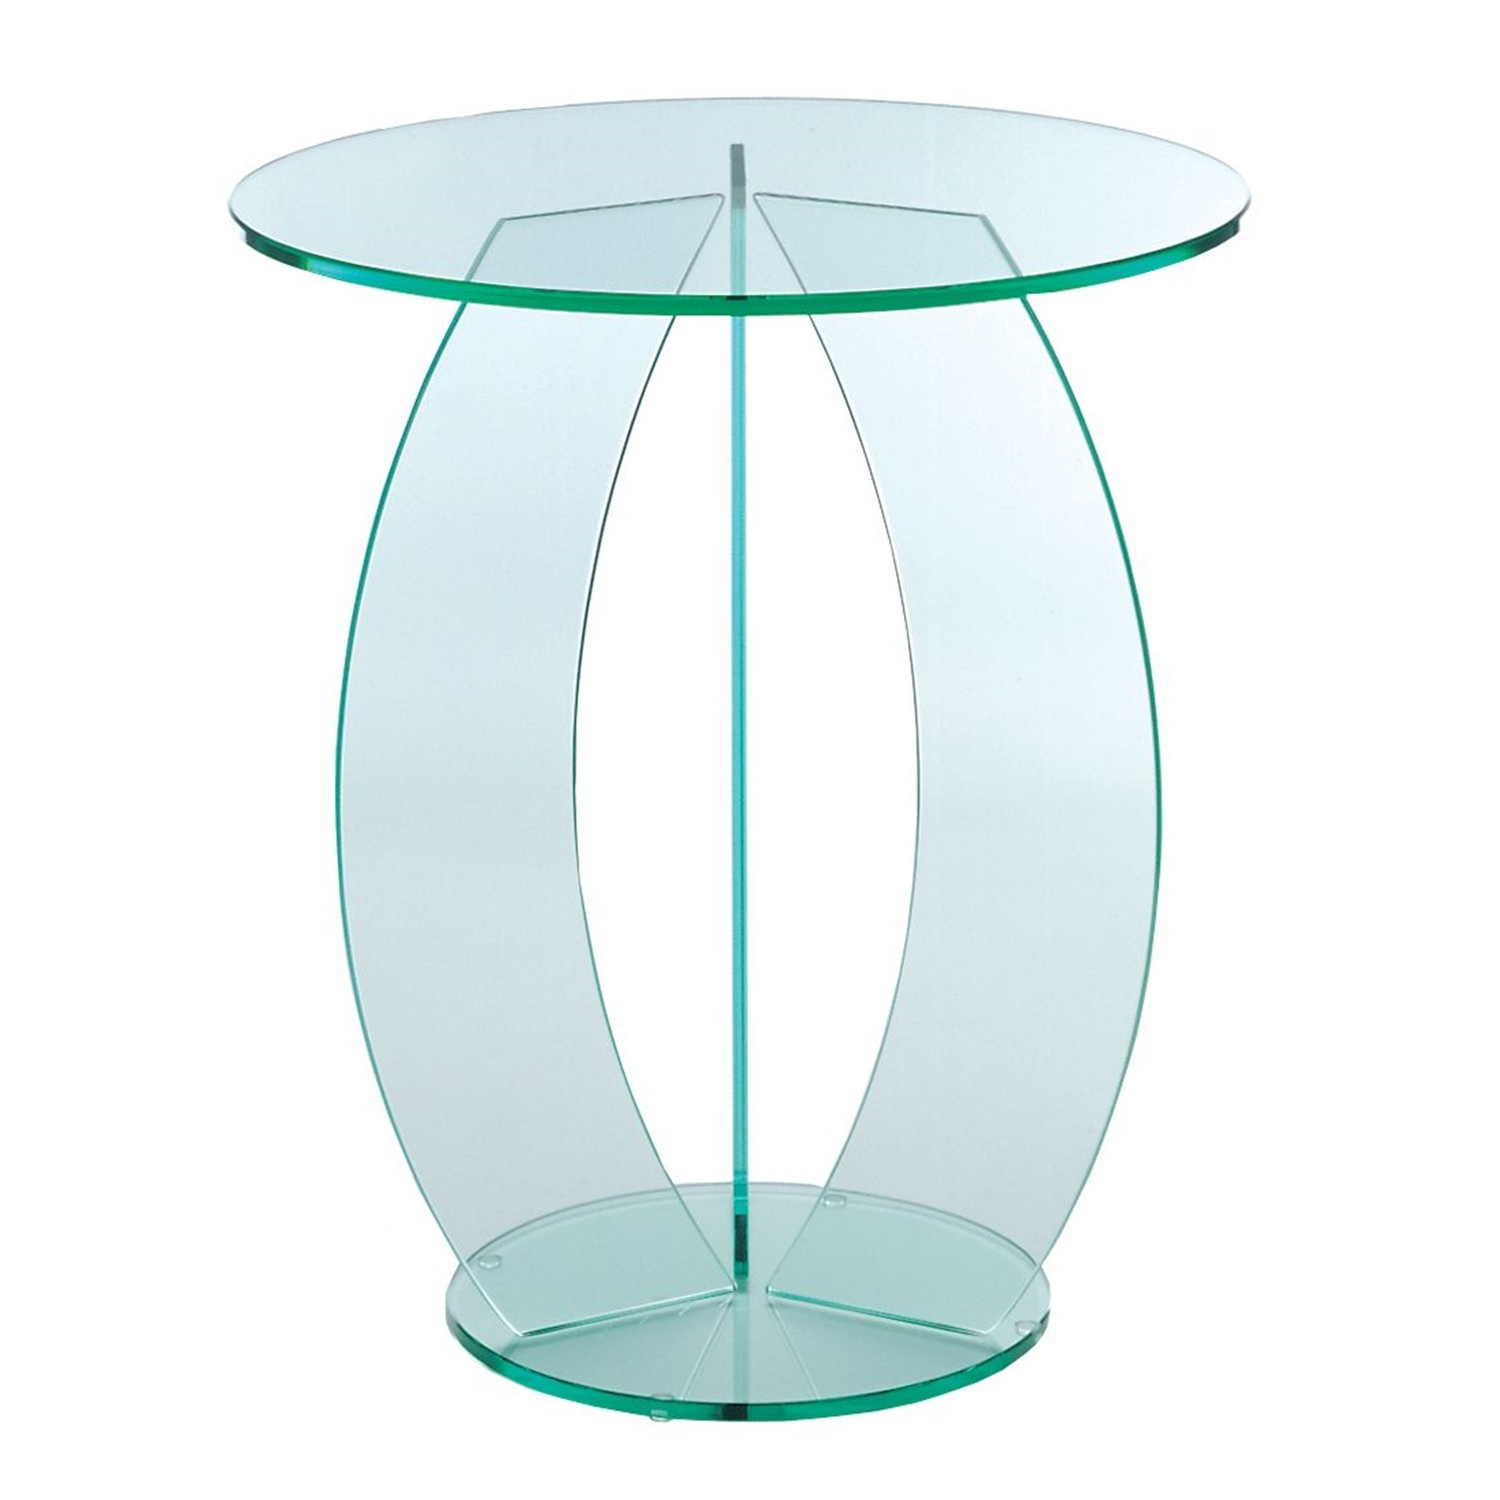 Greenapple Glass Round Lamp Table With C-Shape Base